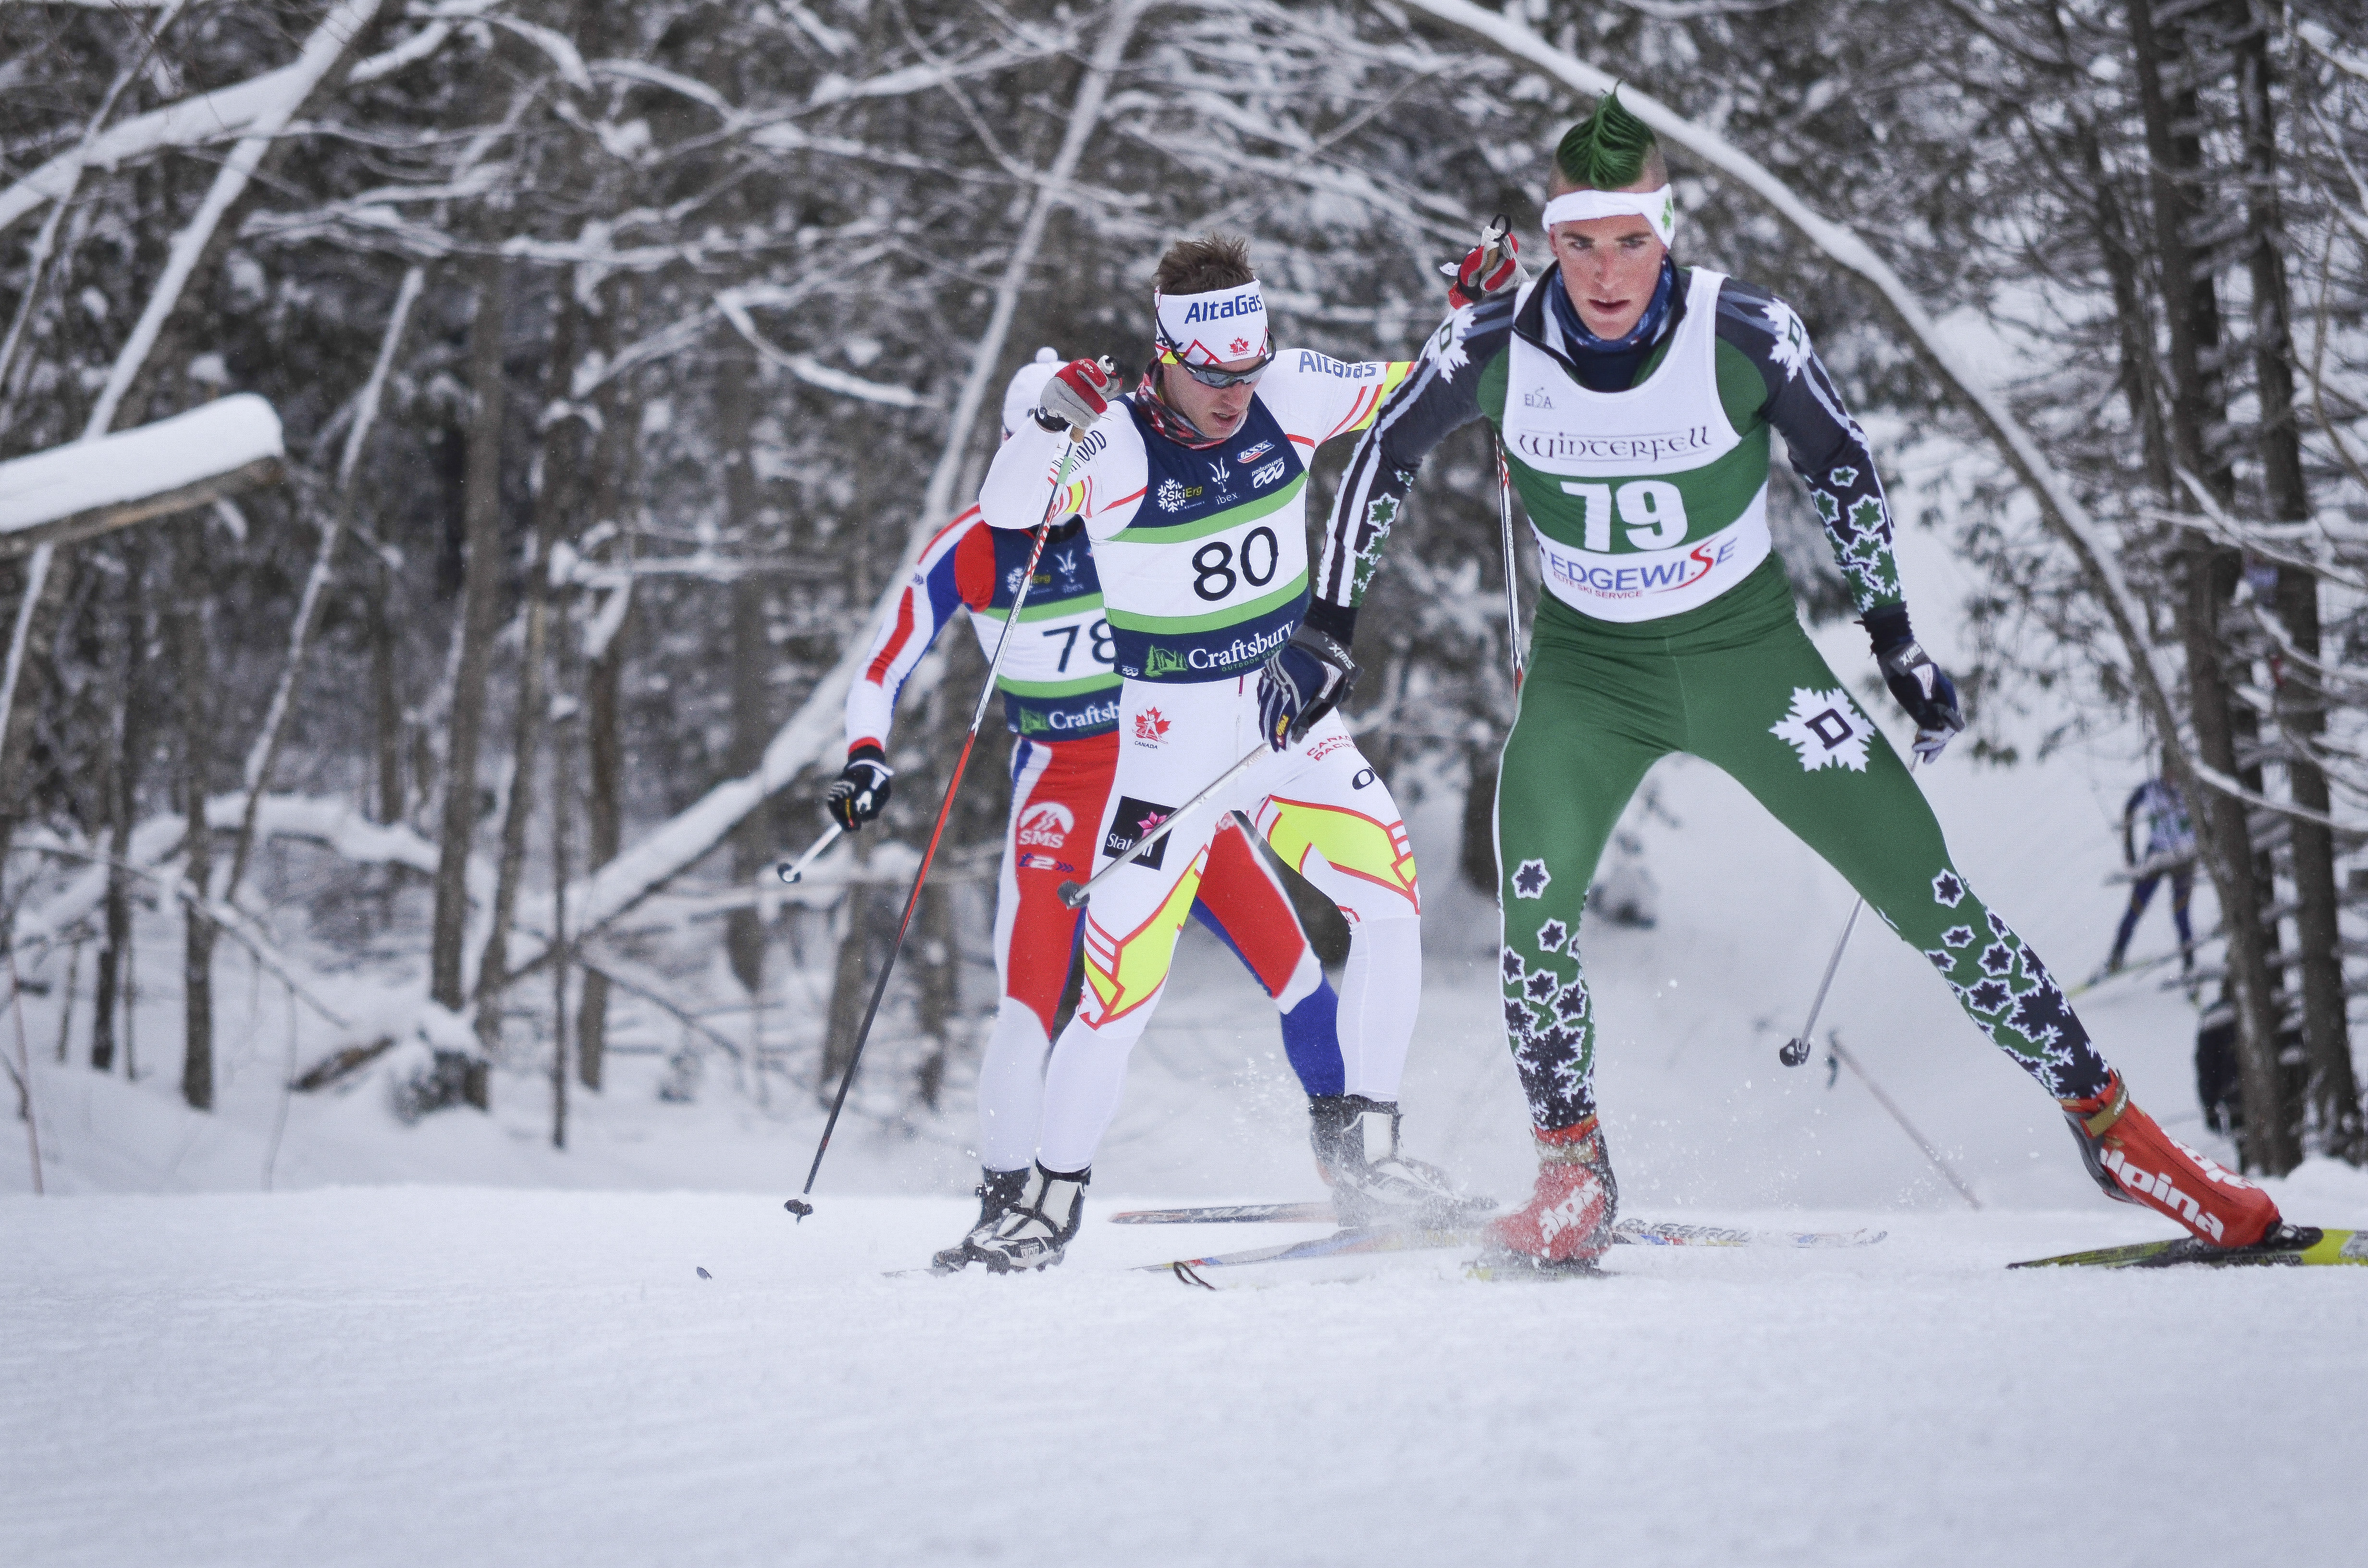 https://fasterskier.com/wp-content/blogs.dir/1/files/2014/02/Patrick-Caldwell-Craftsbury-SuperTour.jpg